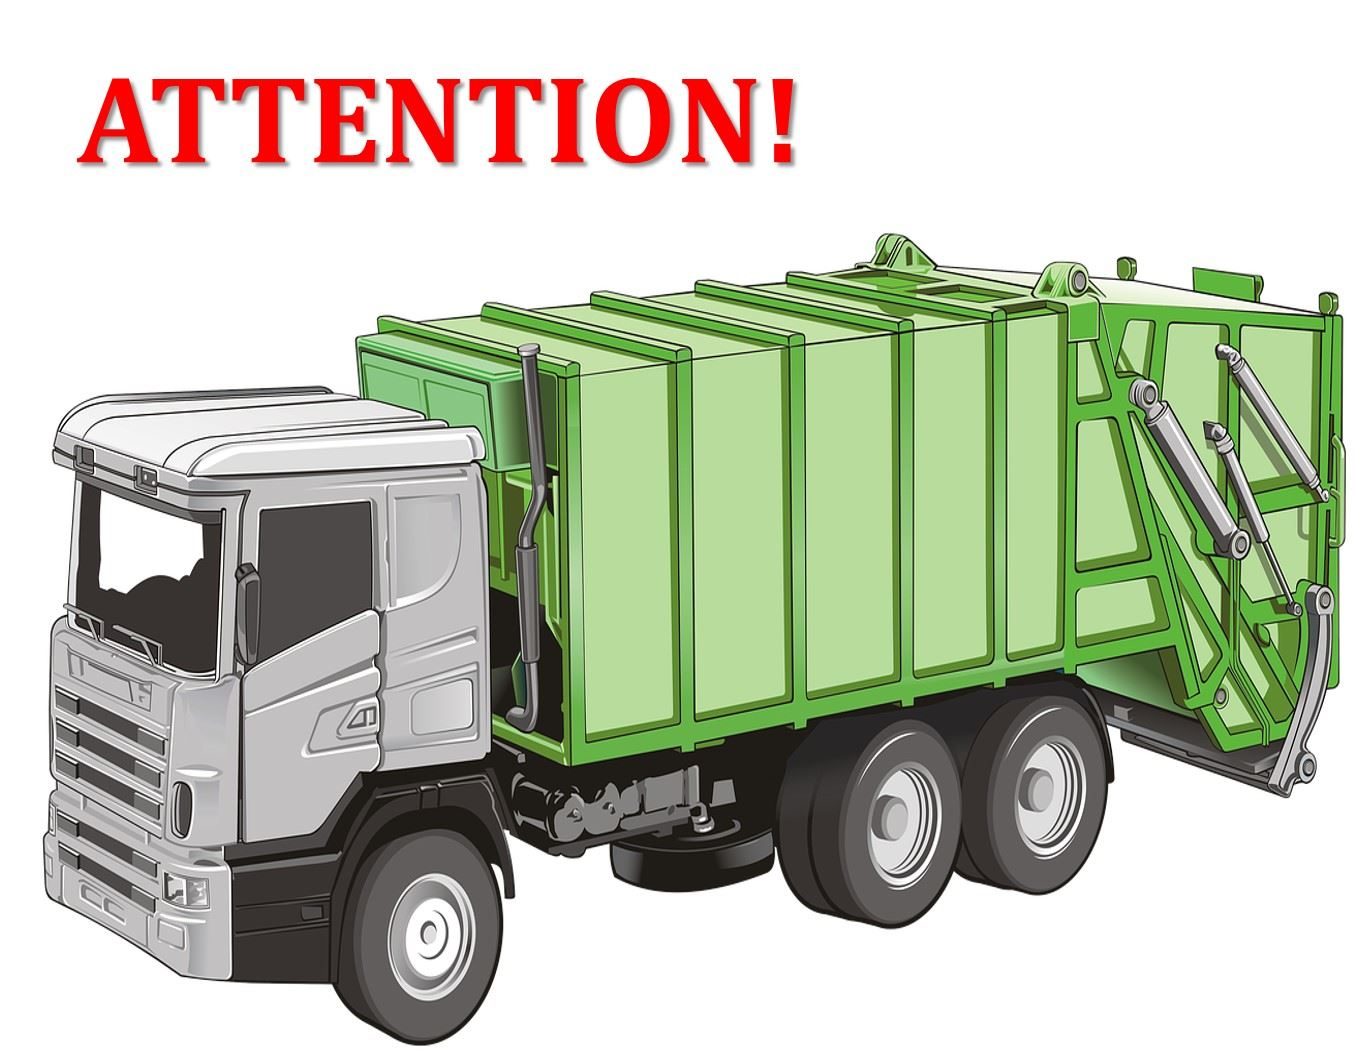 Trash Truck_Attention